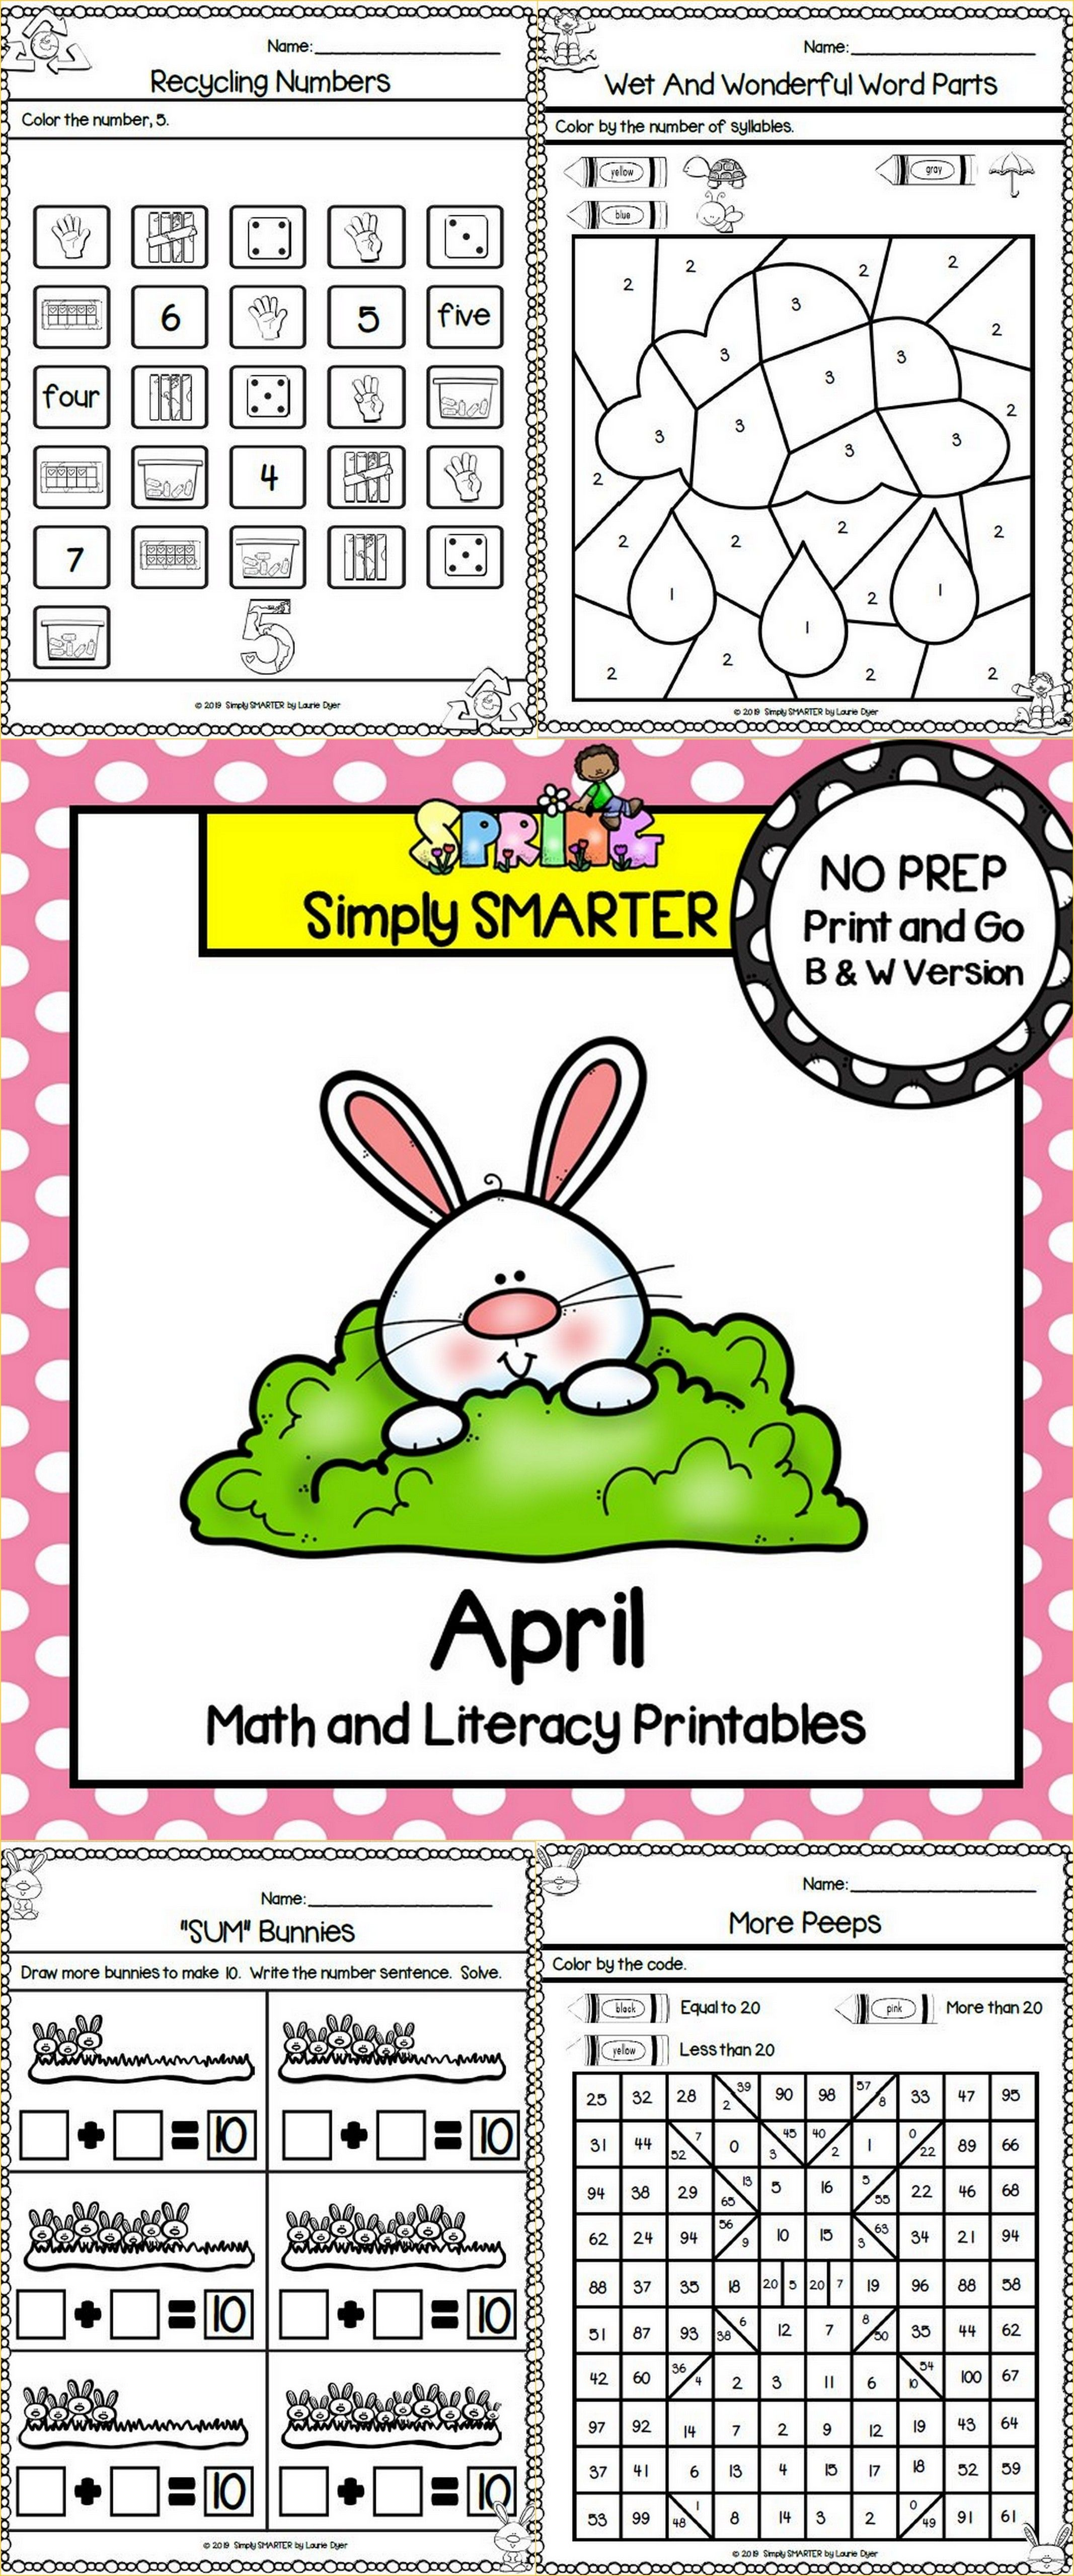 April Math And Literacy Printables And Activities For